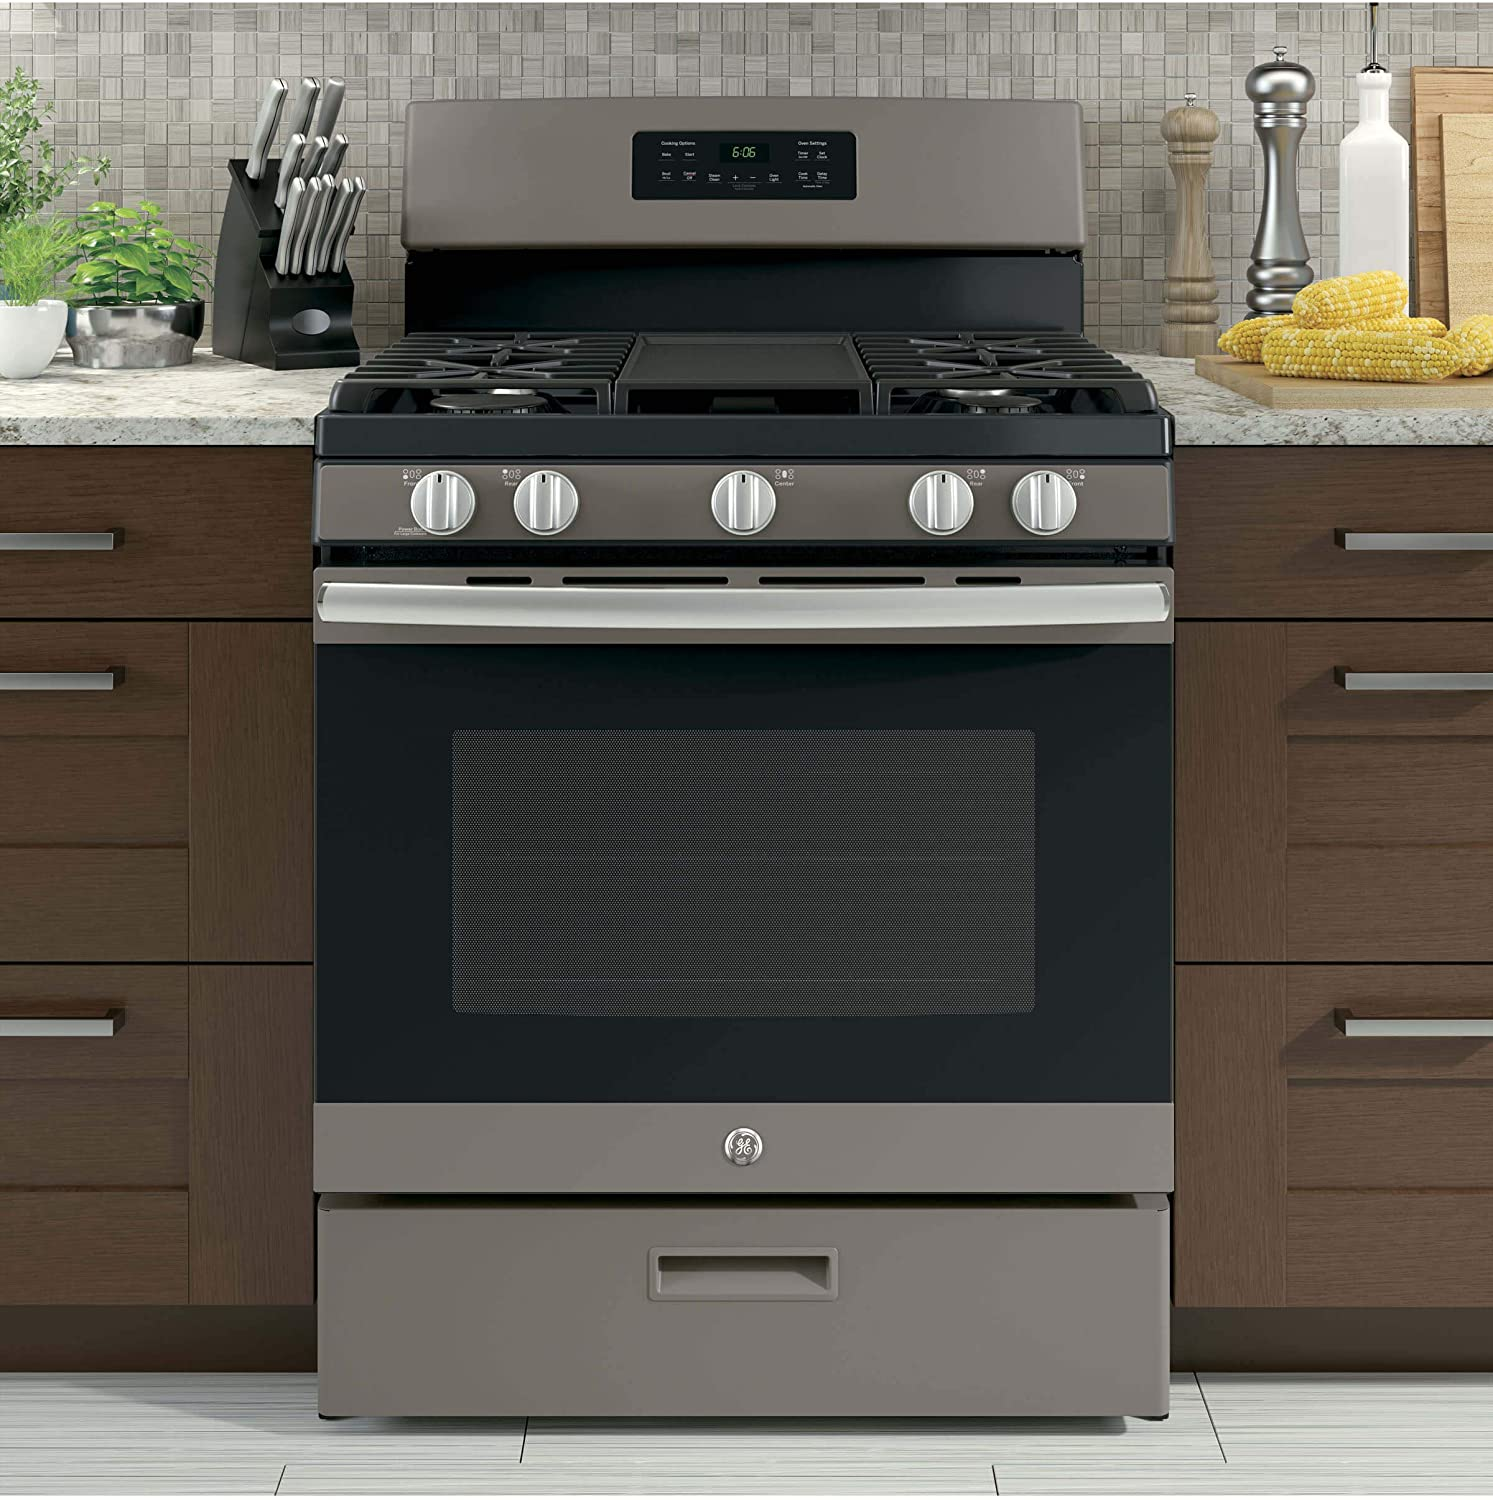 Empava-24inches-Electric-Single-Wall-Oven-Convection-with-10-Cooking-Functions-Deluxe-360-ROTISSERIE-with-Sensitive-Touch-Control